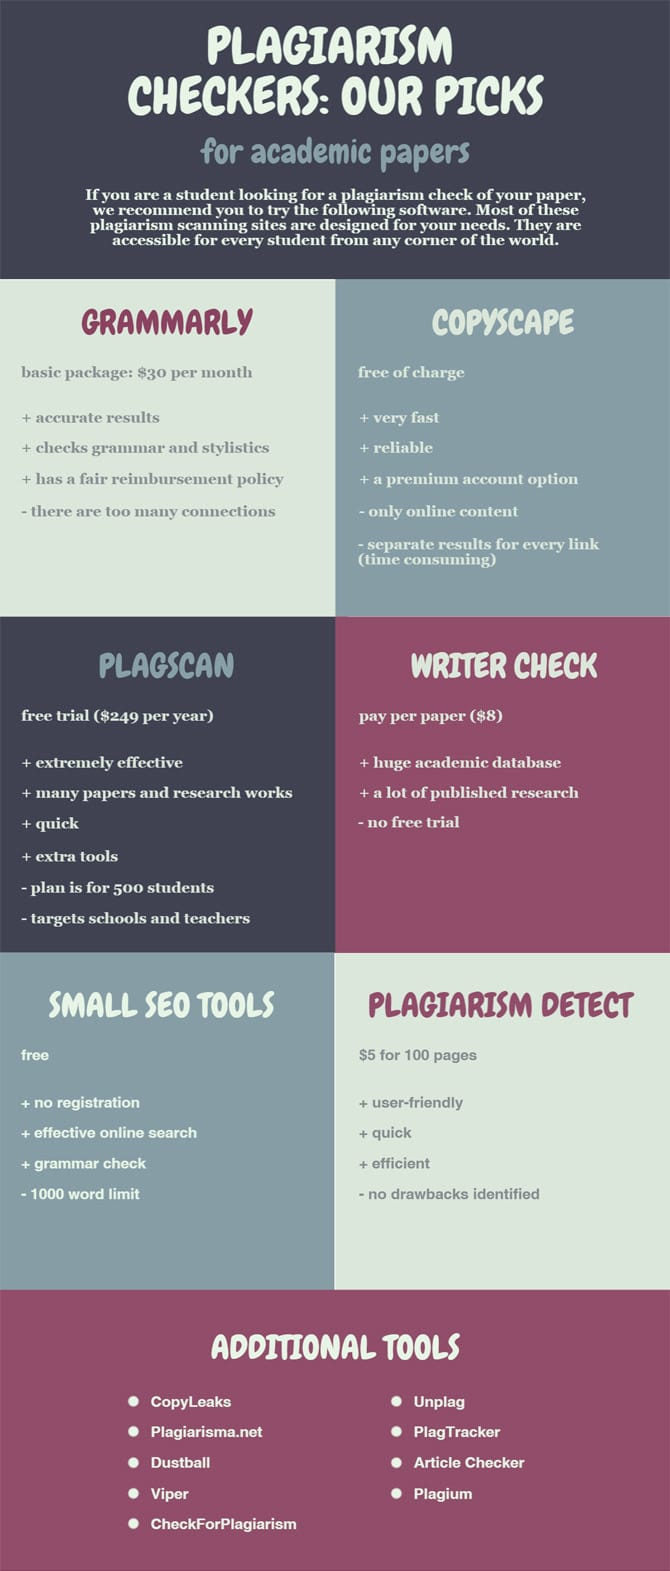 plagiarism check tools how to the right one for you smart plagiarism checkers our picks